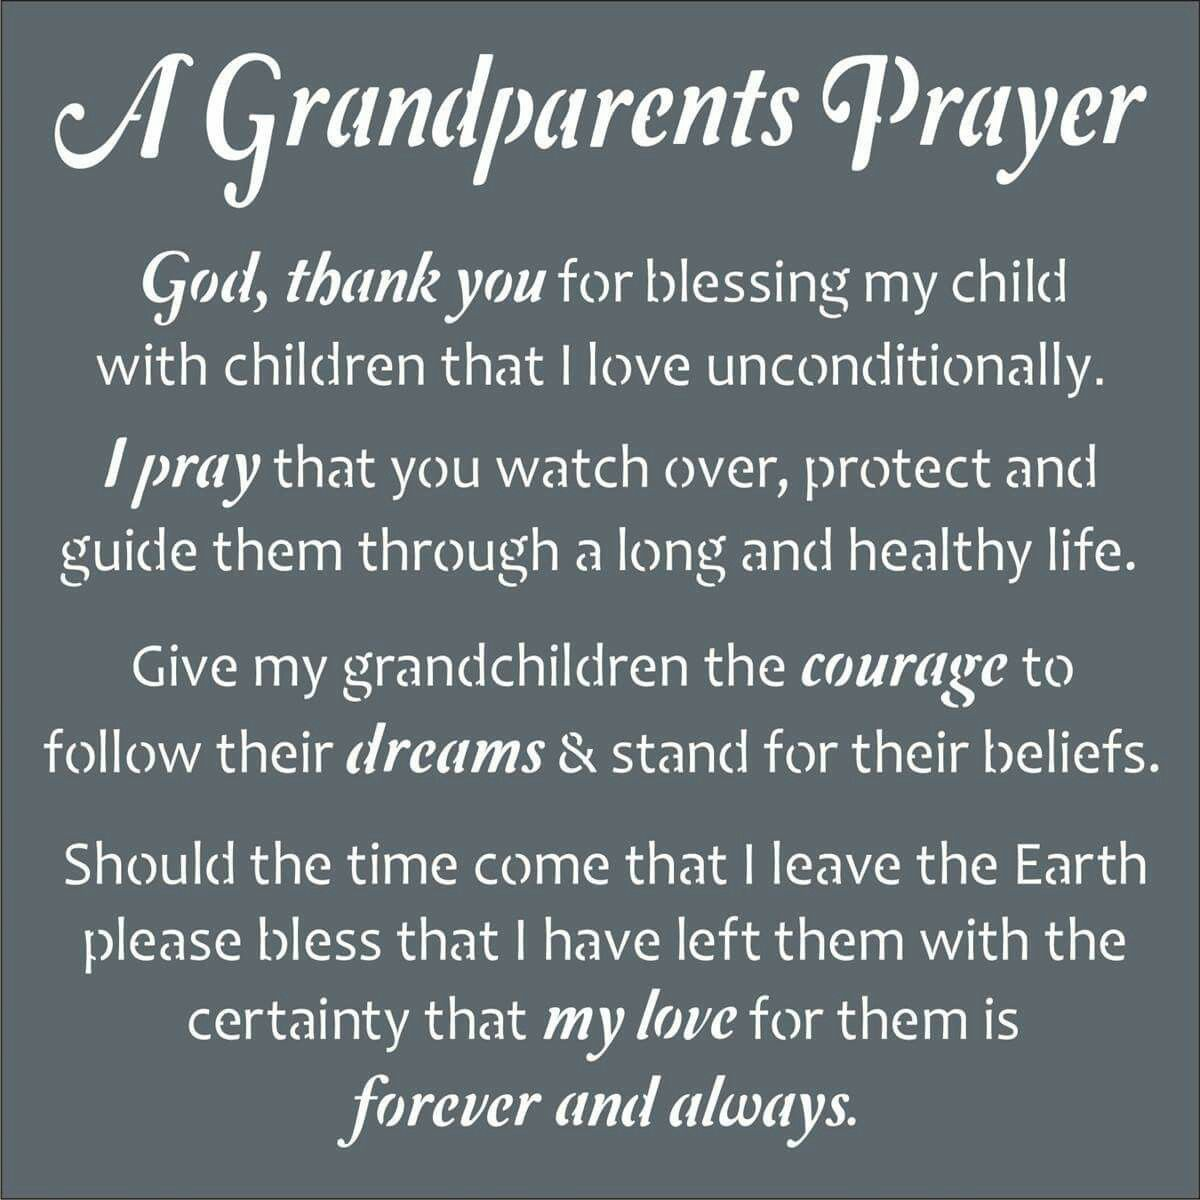 Who and how to pray for grandchildren